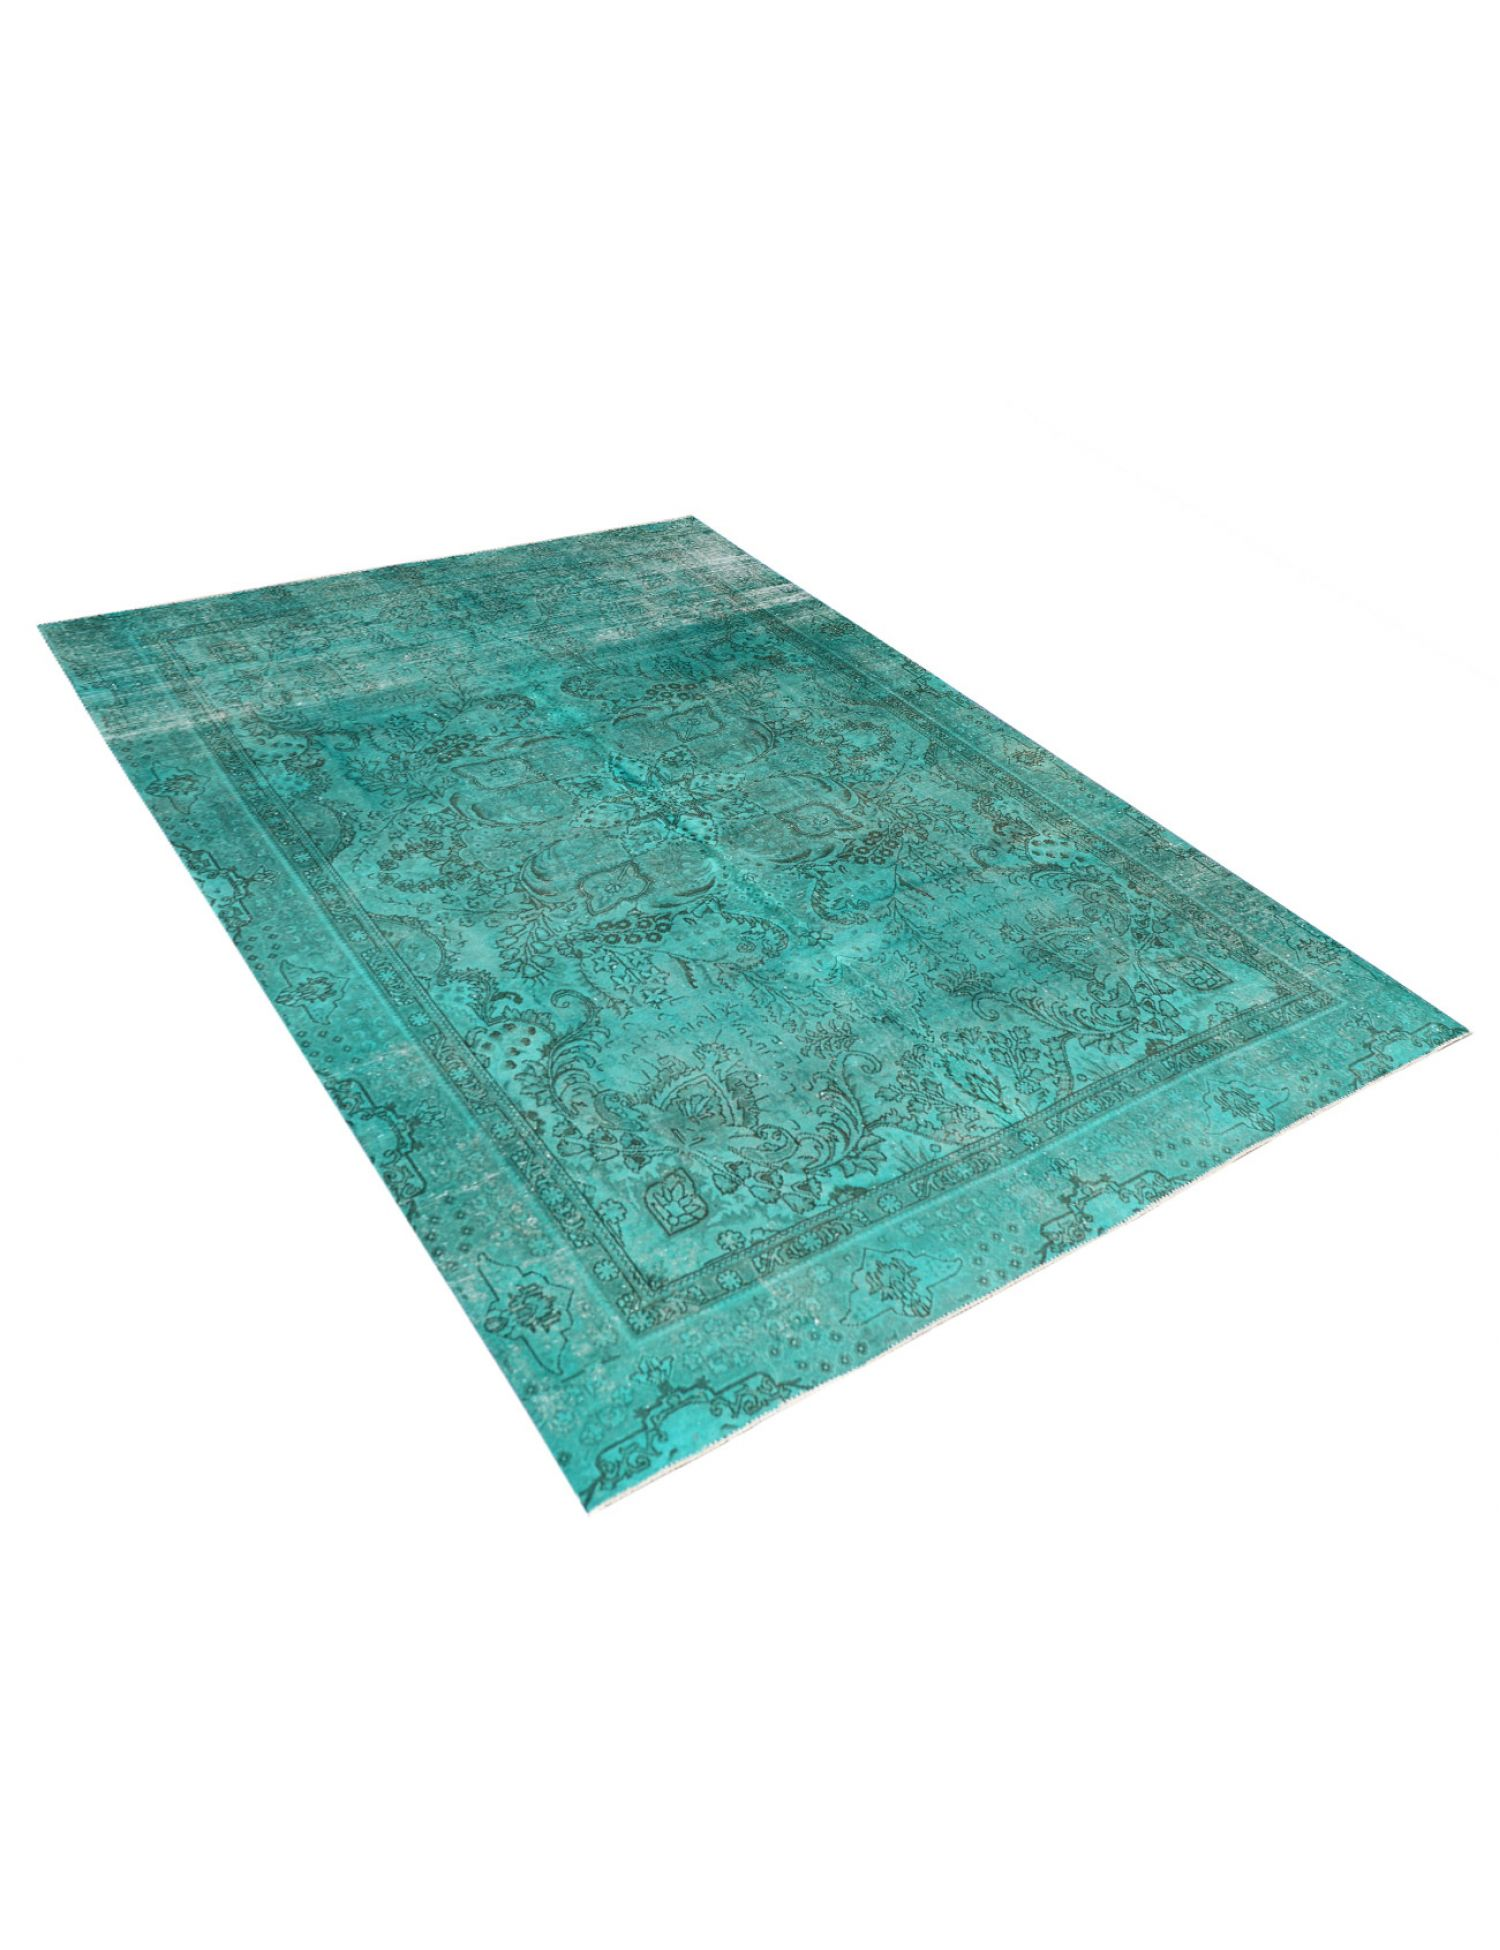 Vintage Carpet  green <br/>362 x 268 cm